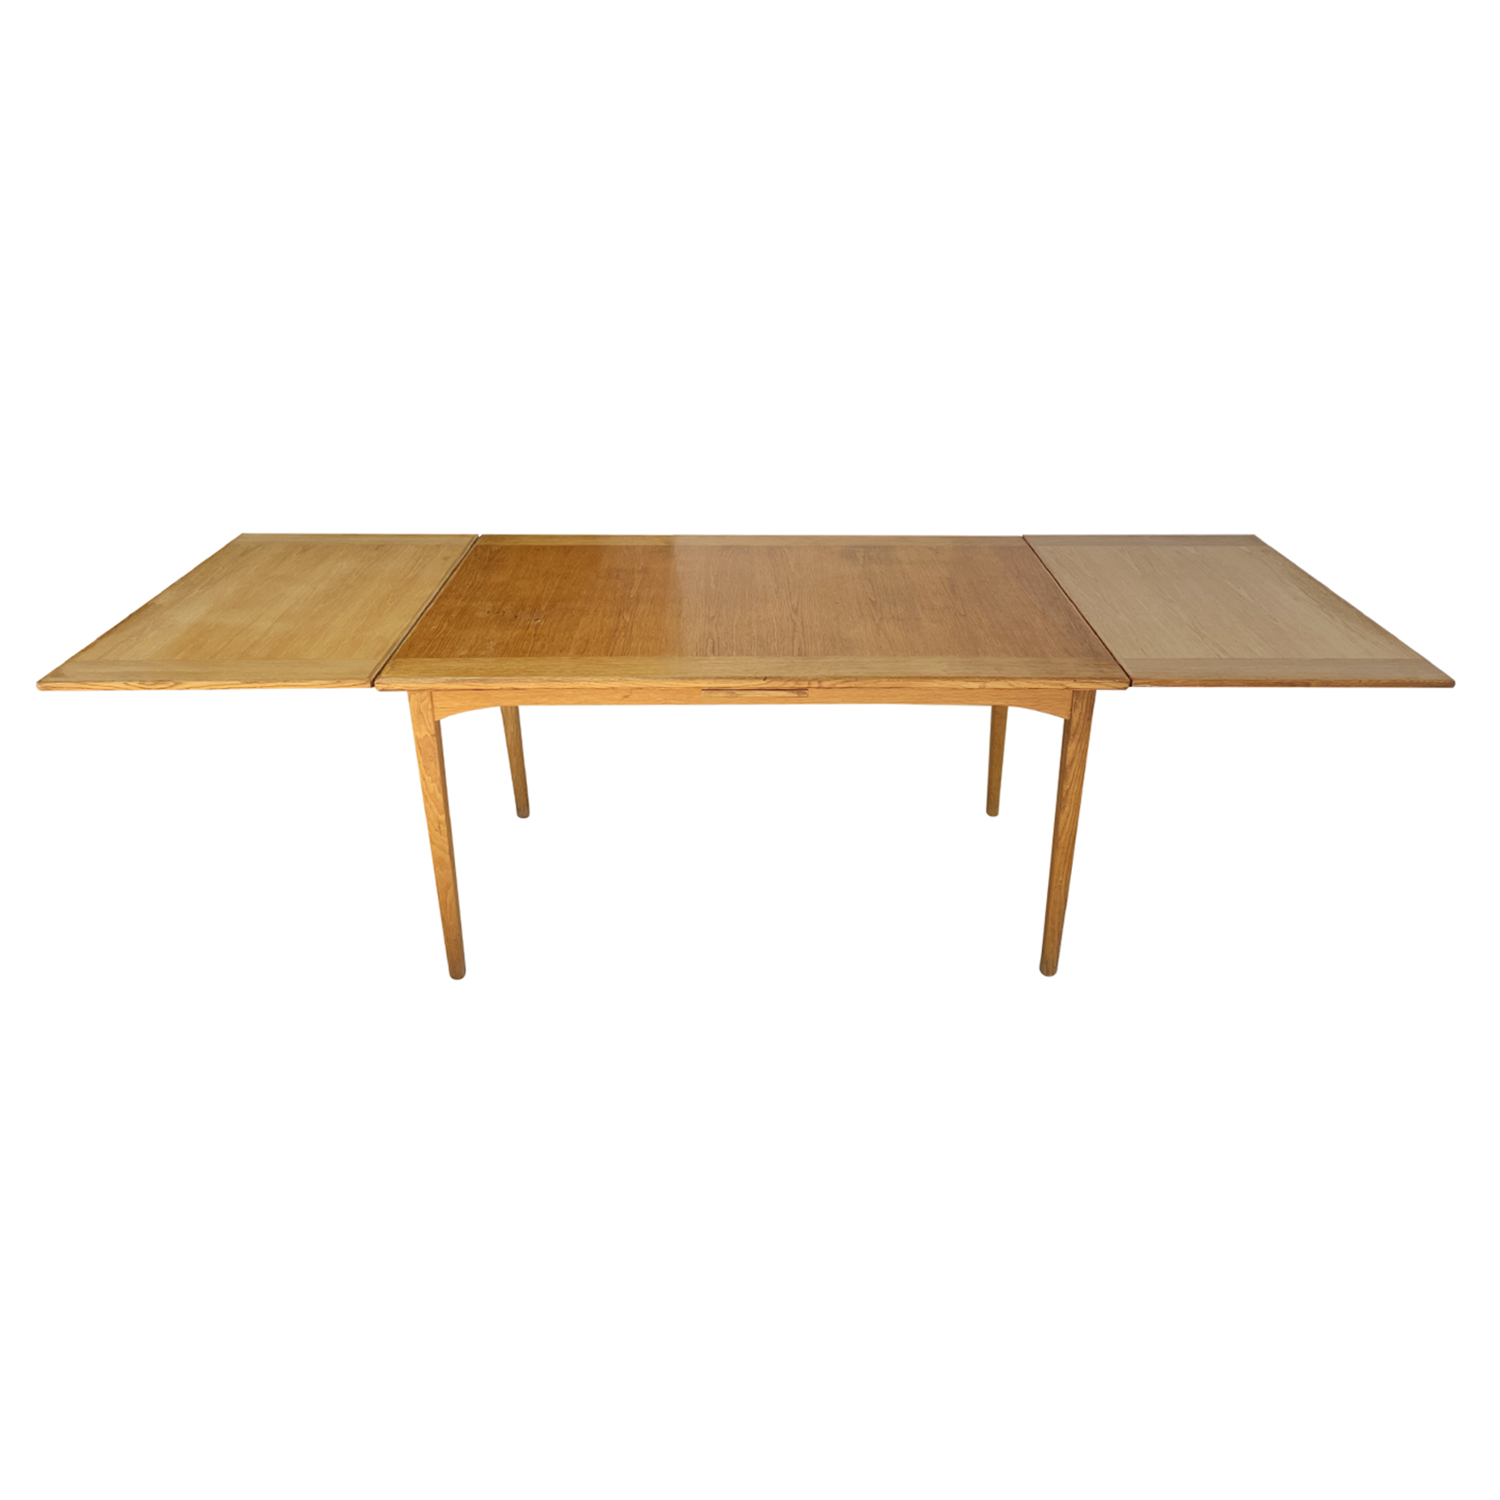 20th Century Light-Brown Swedish Extendable Walnut Dining Table by Carl Malmsten